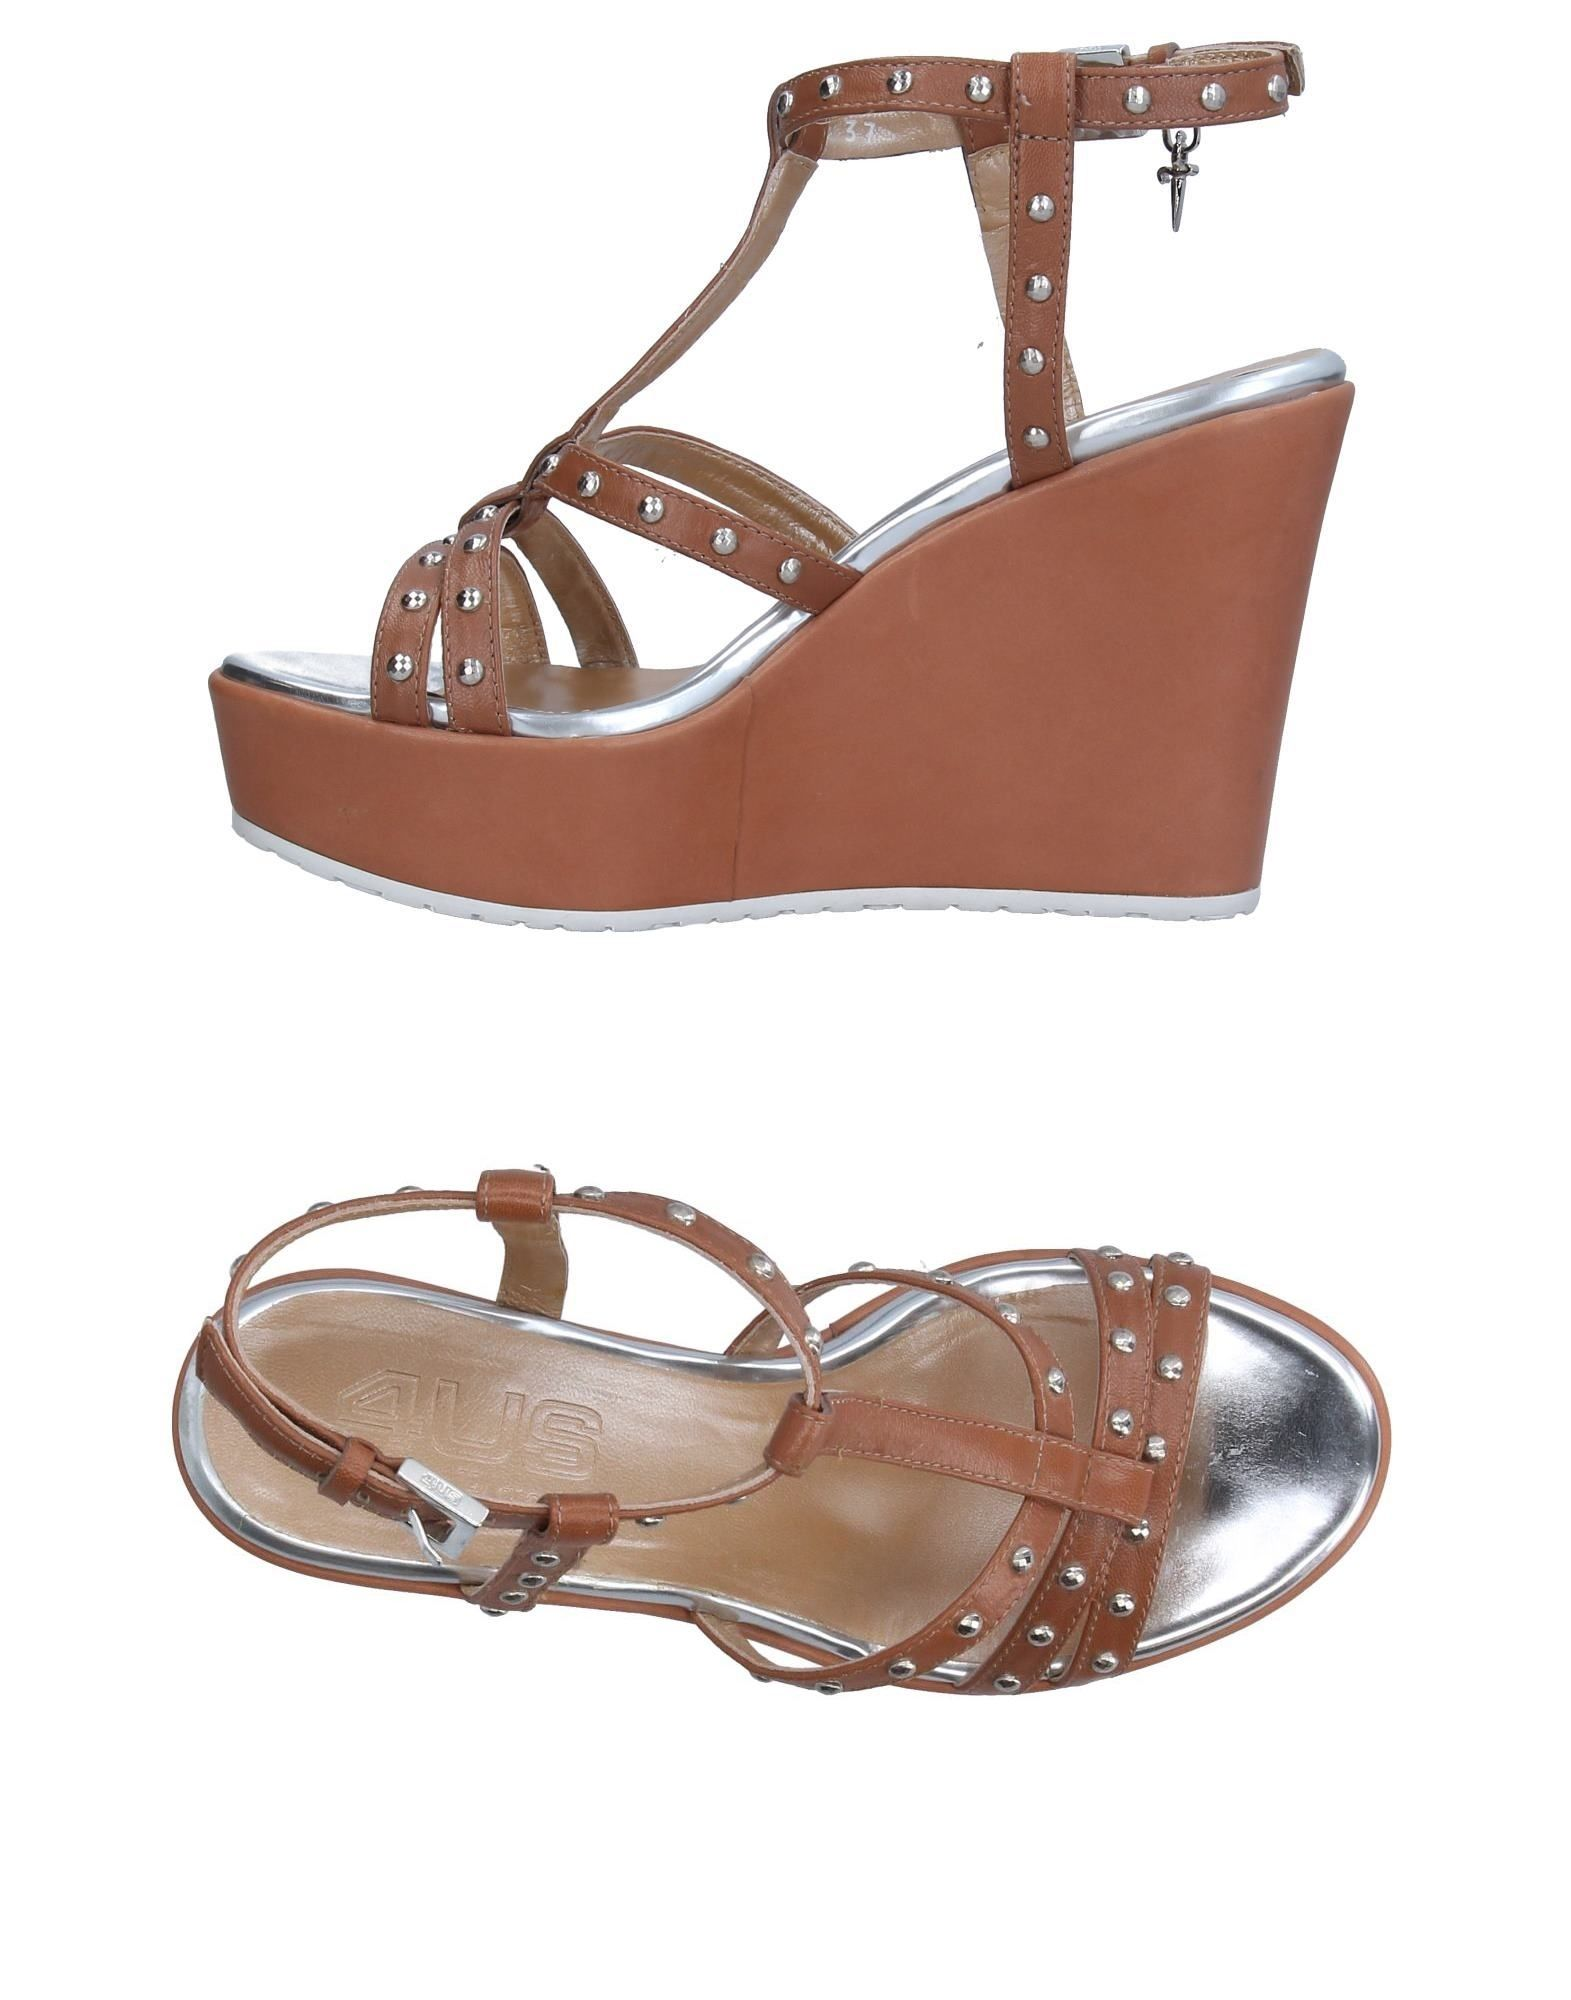 Cesare Paciotti 4Us Sandals - - Sandals Women Cesare Paciotti 4Us Sandals online on  United Kingdom - 11274361PK d70156